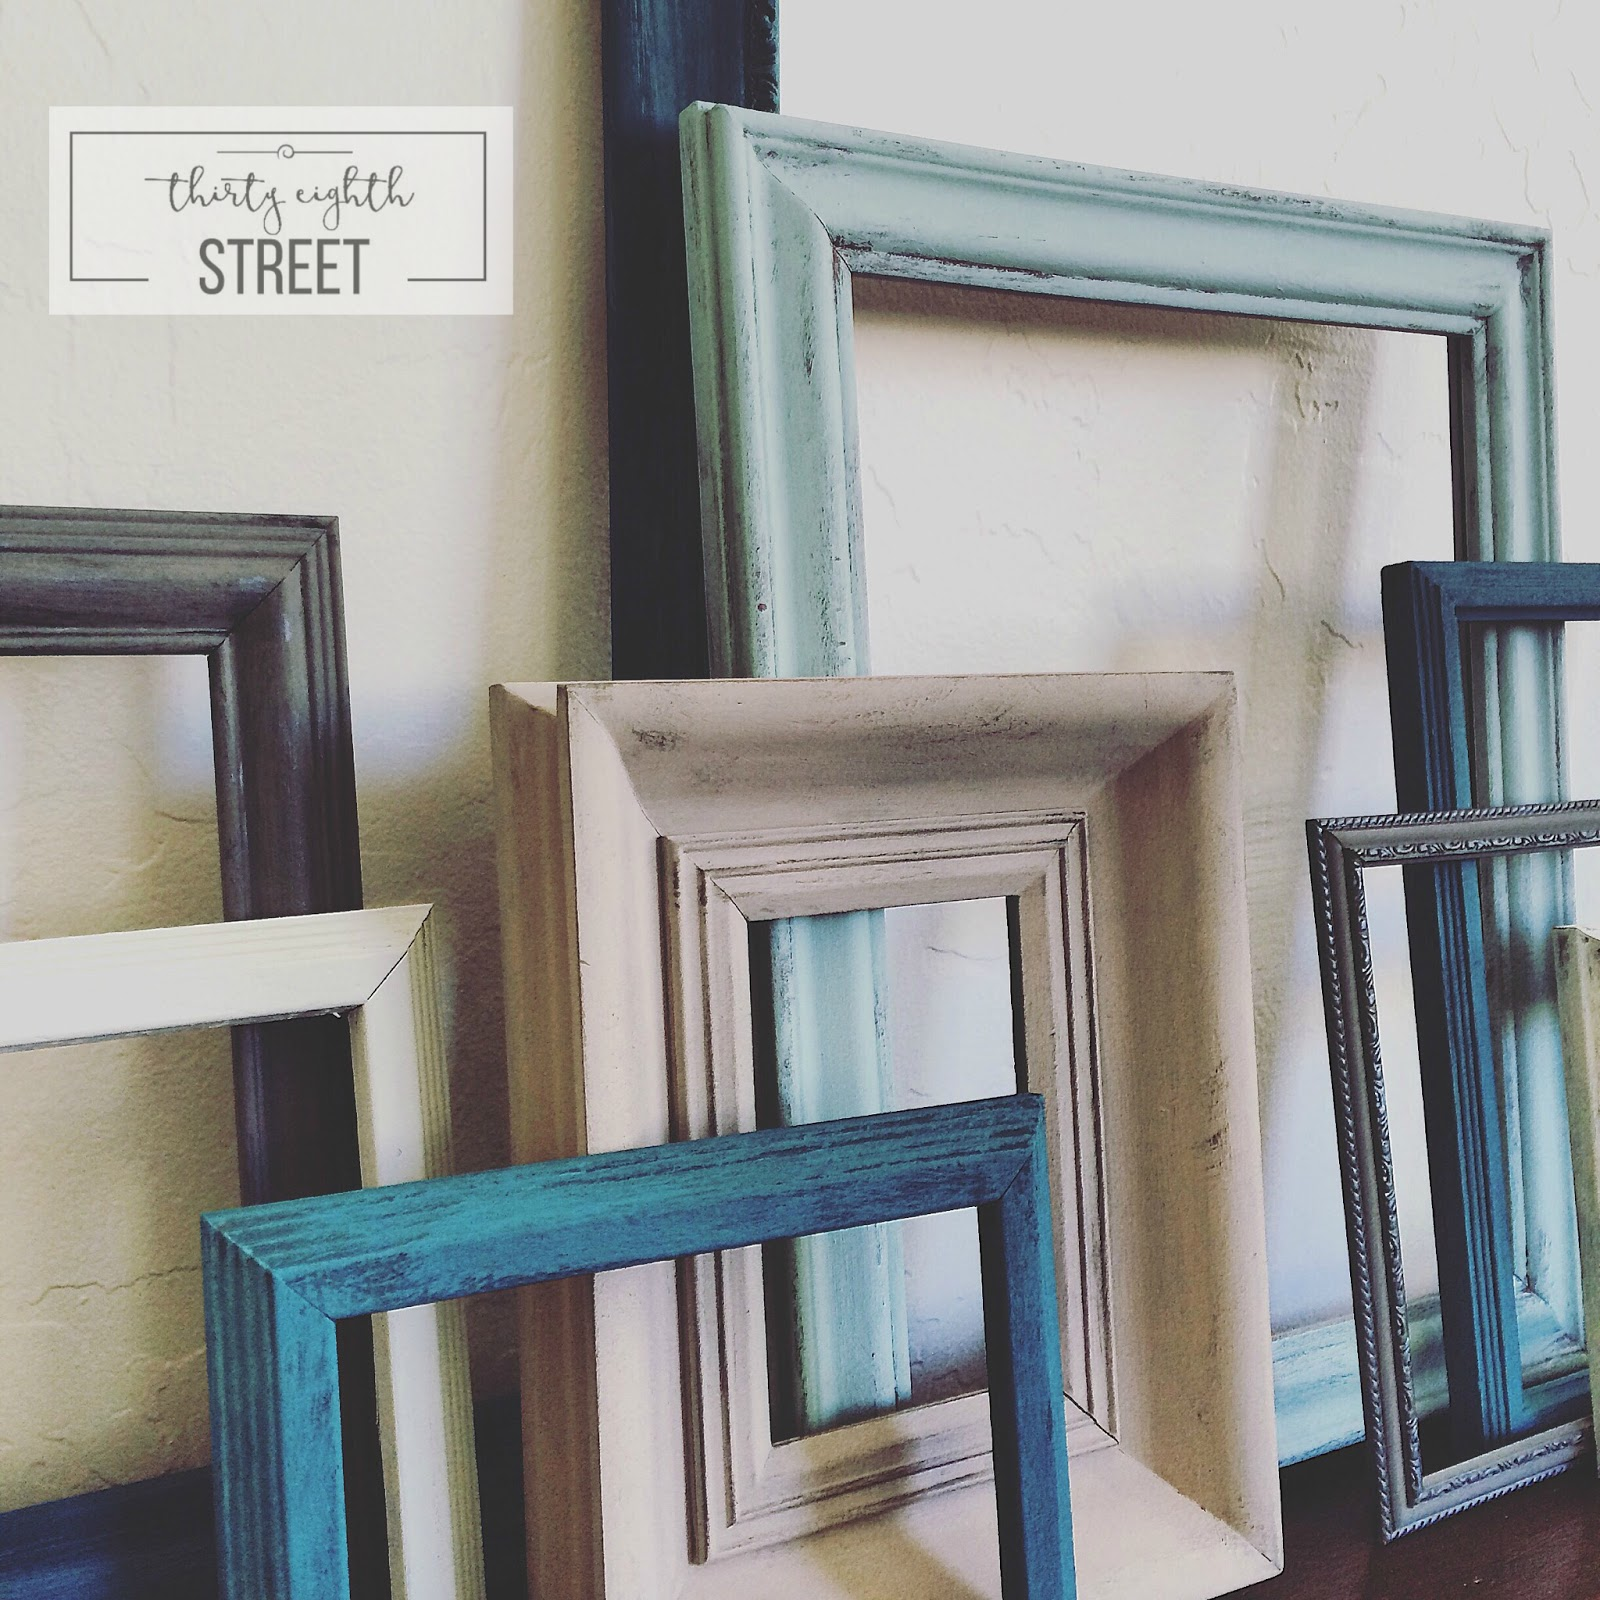 Painting Frames Diy Painted Thrift Store Picture Frames Thirty Eighth Street